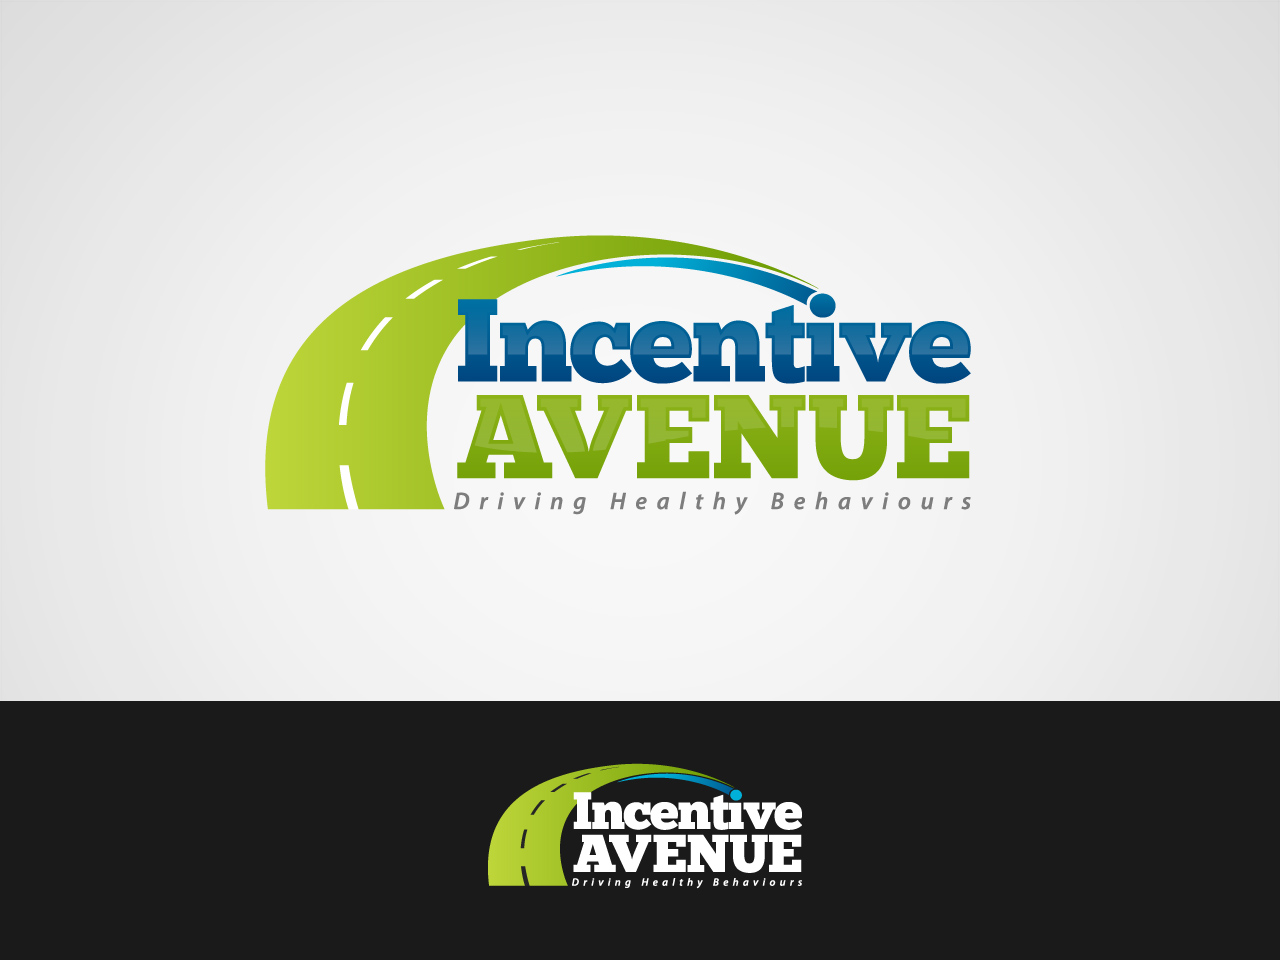 Logo Design by jpbituin - Entry No. 77 in the Logo Design Contest New Logo Design for Incentive Avenue.